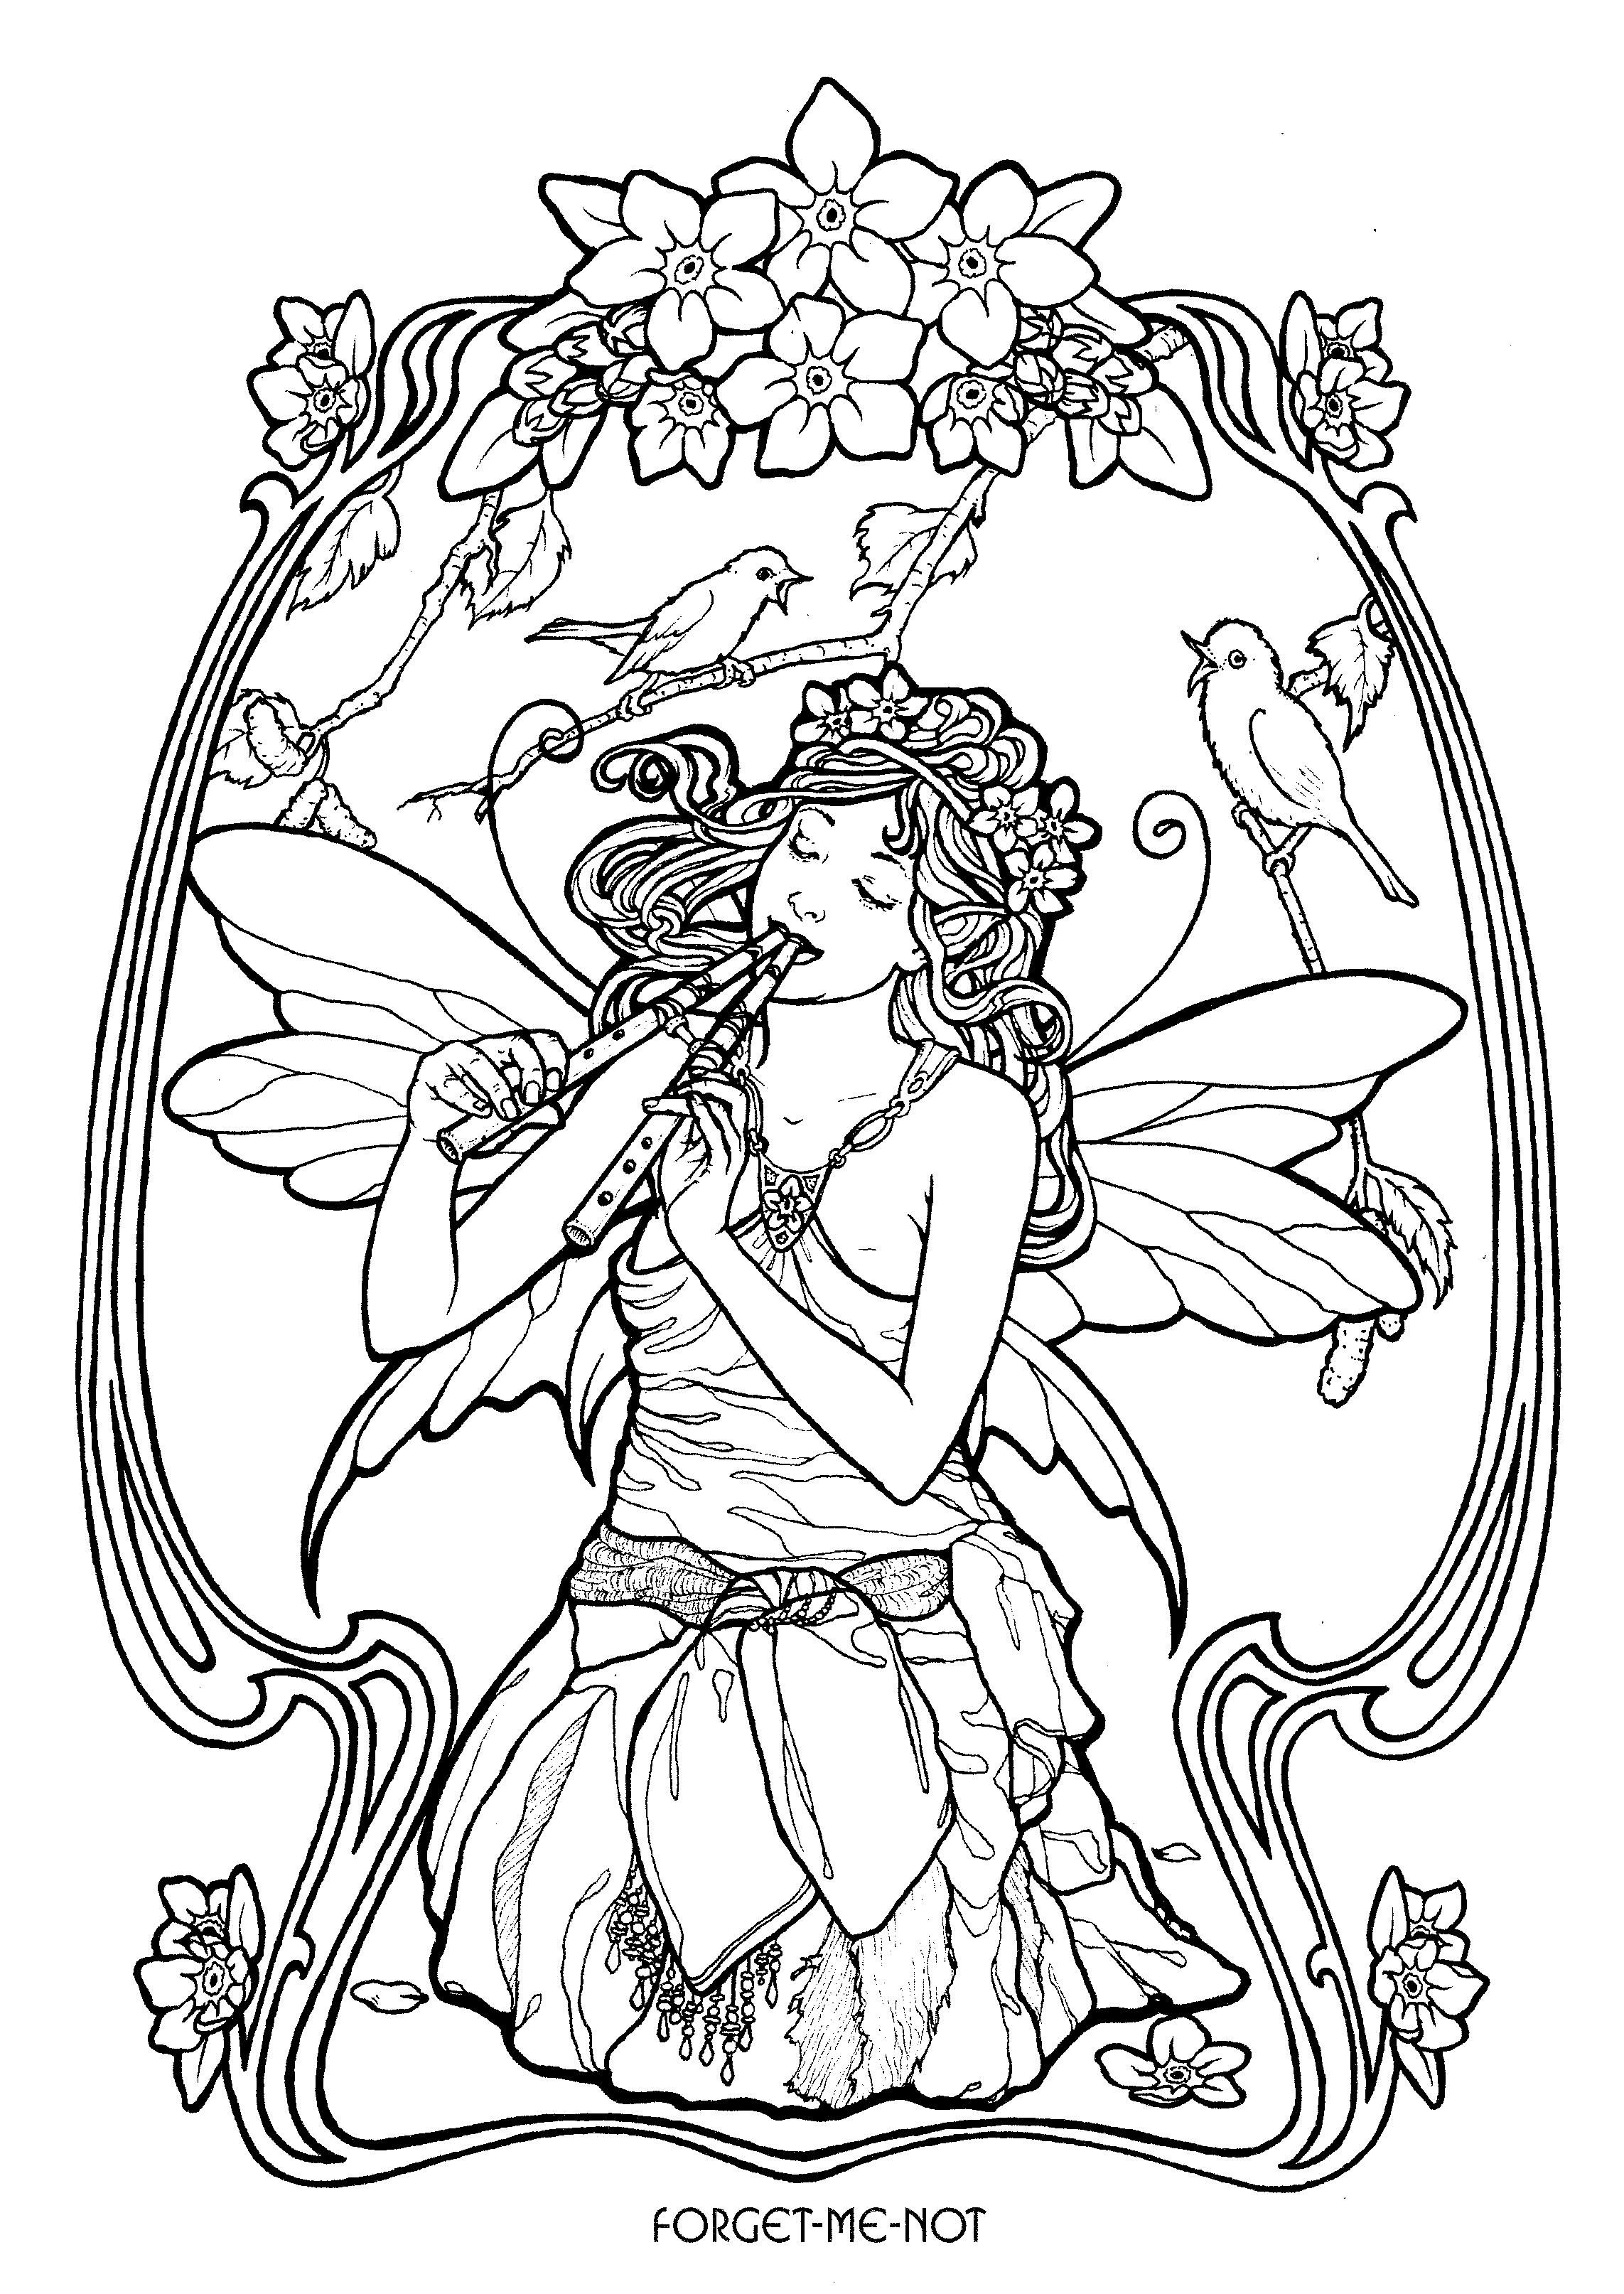 Fairy 26 | Art I Like | Pinterest | Fairy, Adult coloring and ...